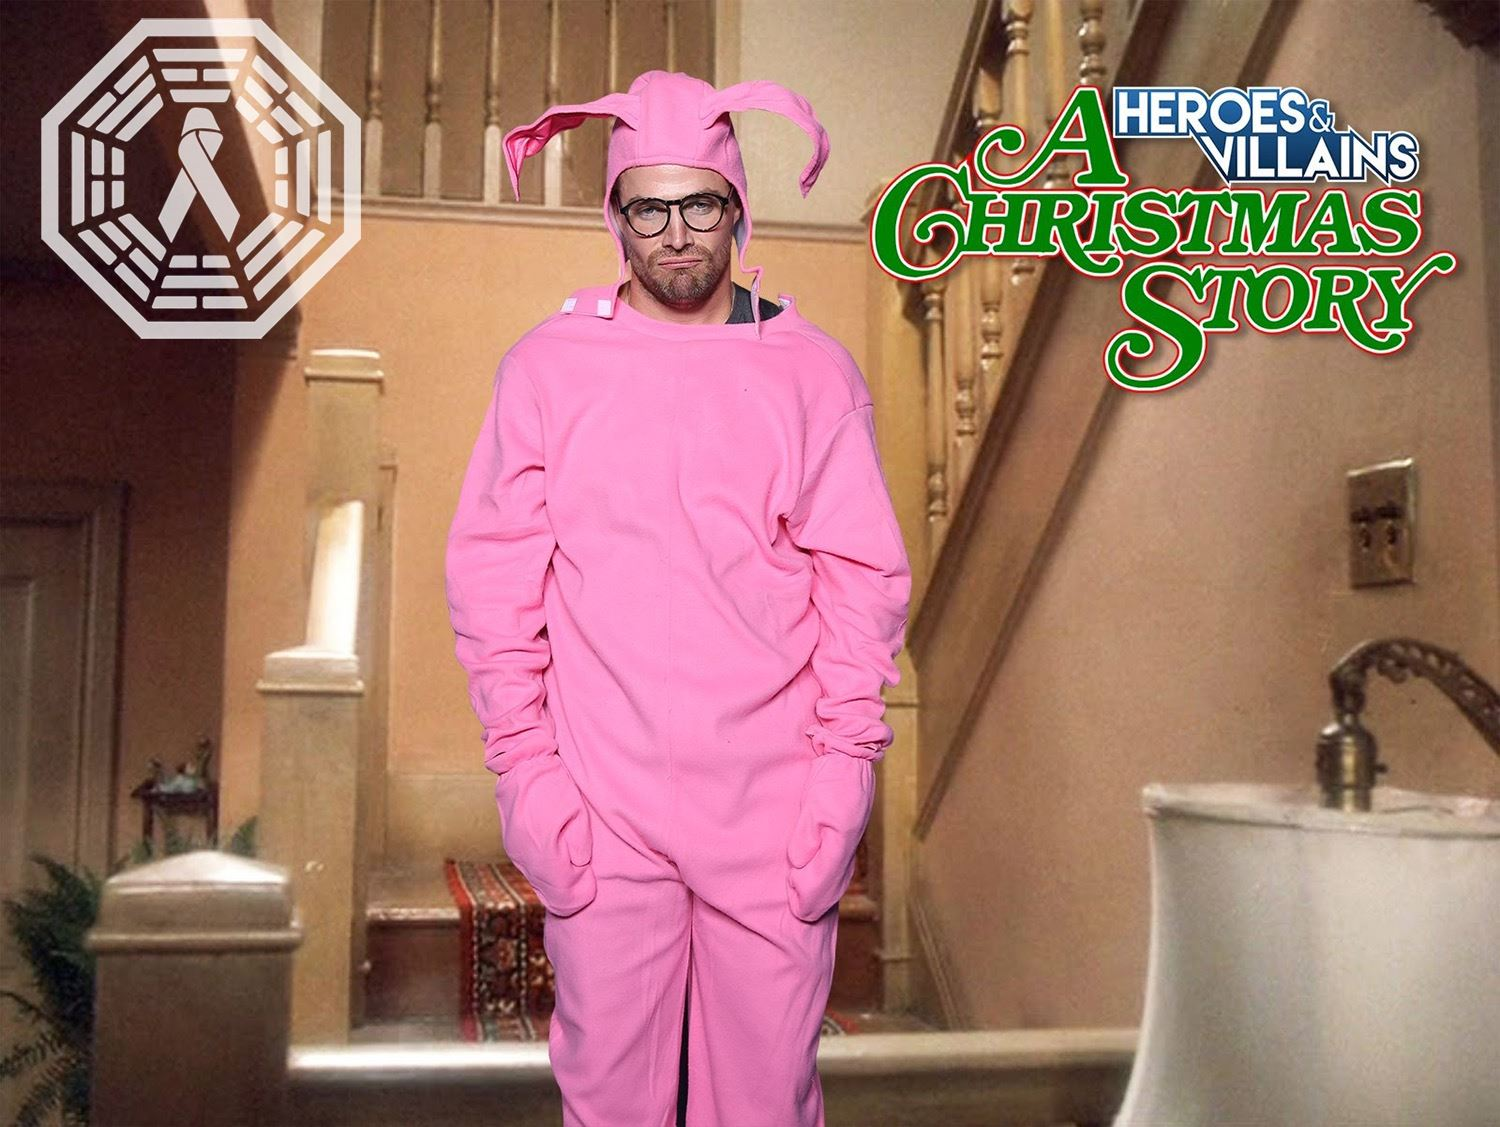 Christmas Story Bunny Pajamas.Christmas Story A Bunny Costume Signed By Stephen Amell Arrow